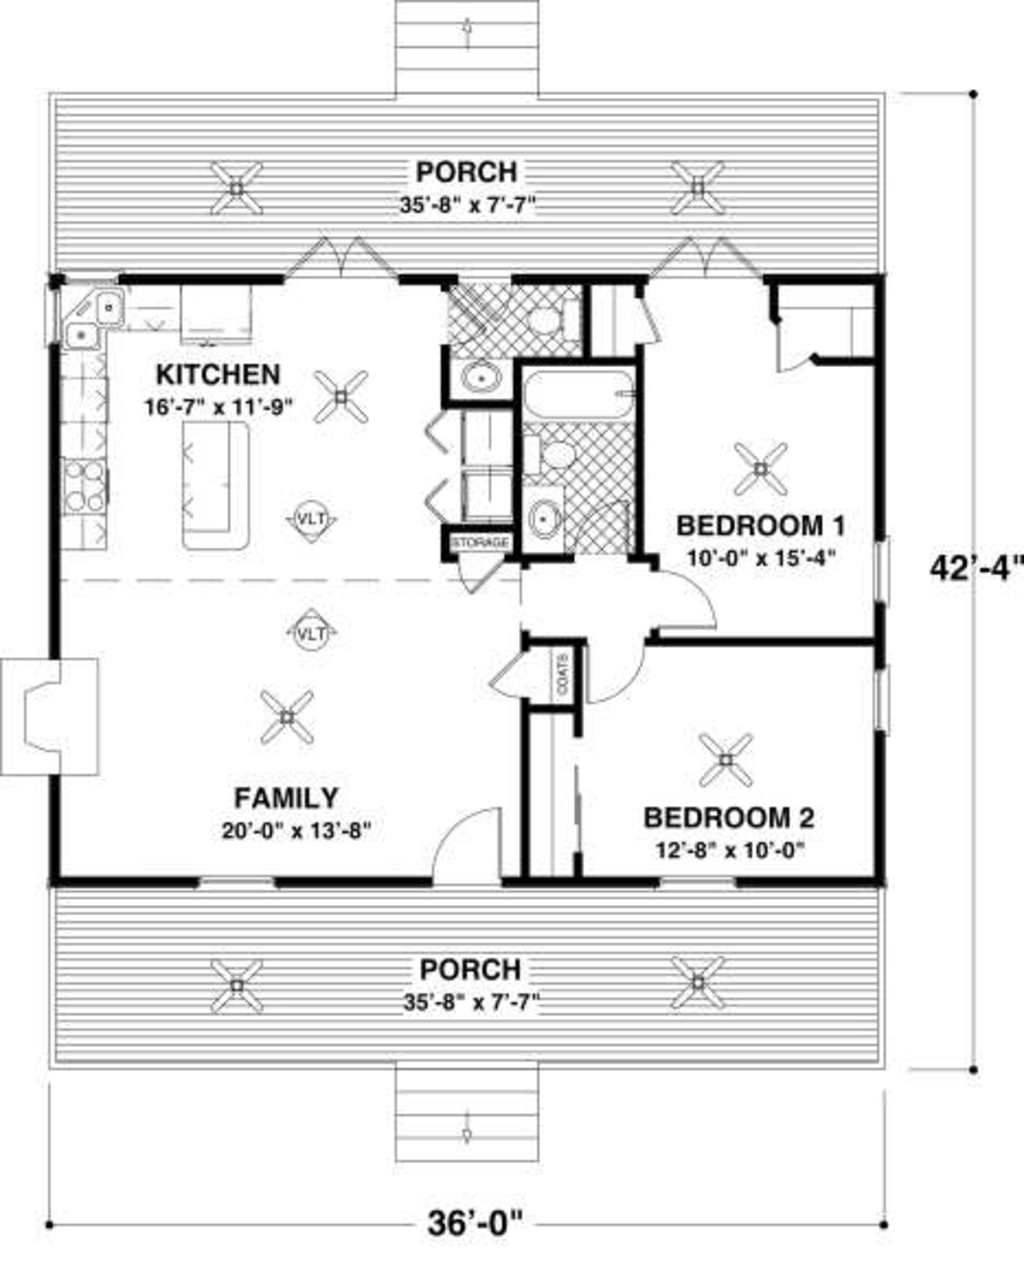 Cottage Style House Plan 2 Beds 1 5 Baths 954 Sq Ft Plan 56 547 Small House Floor Plans Tiny House Plans Cottage Style House Plans